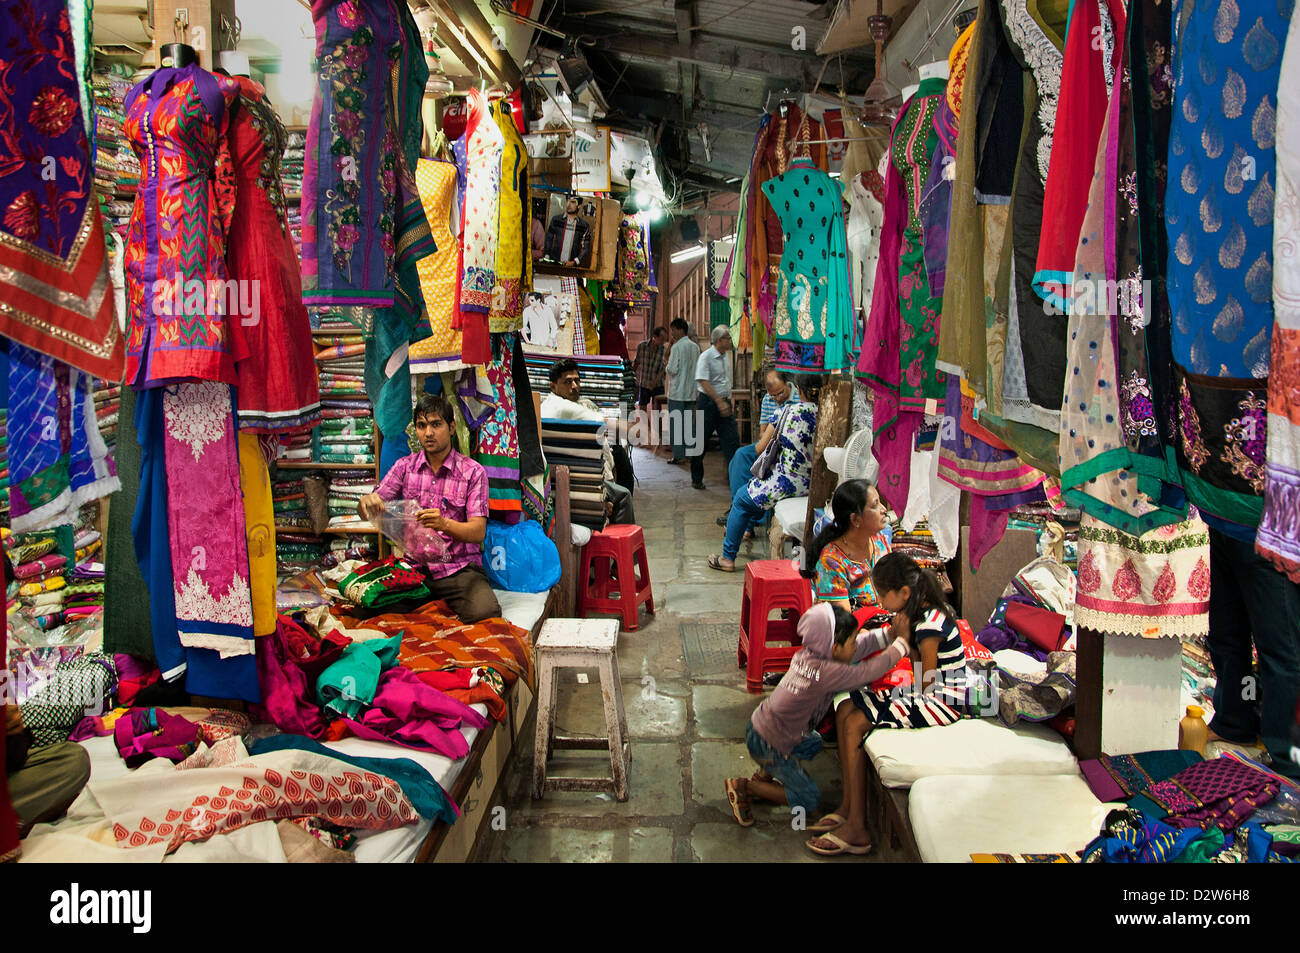 Indian Cloth Store